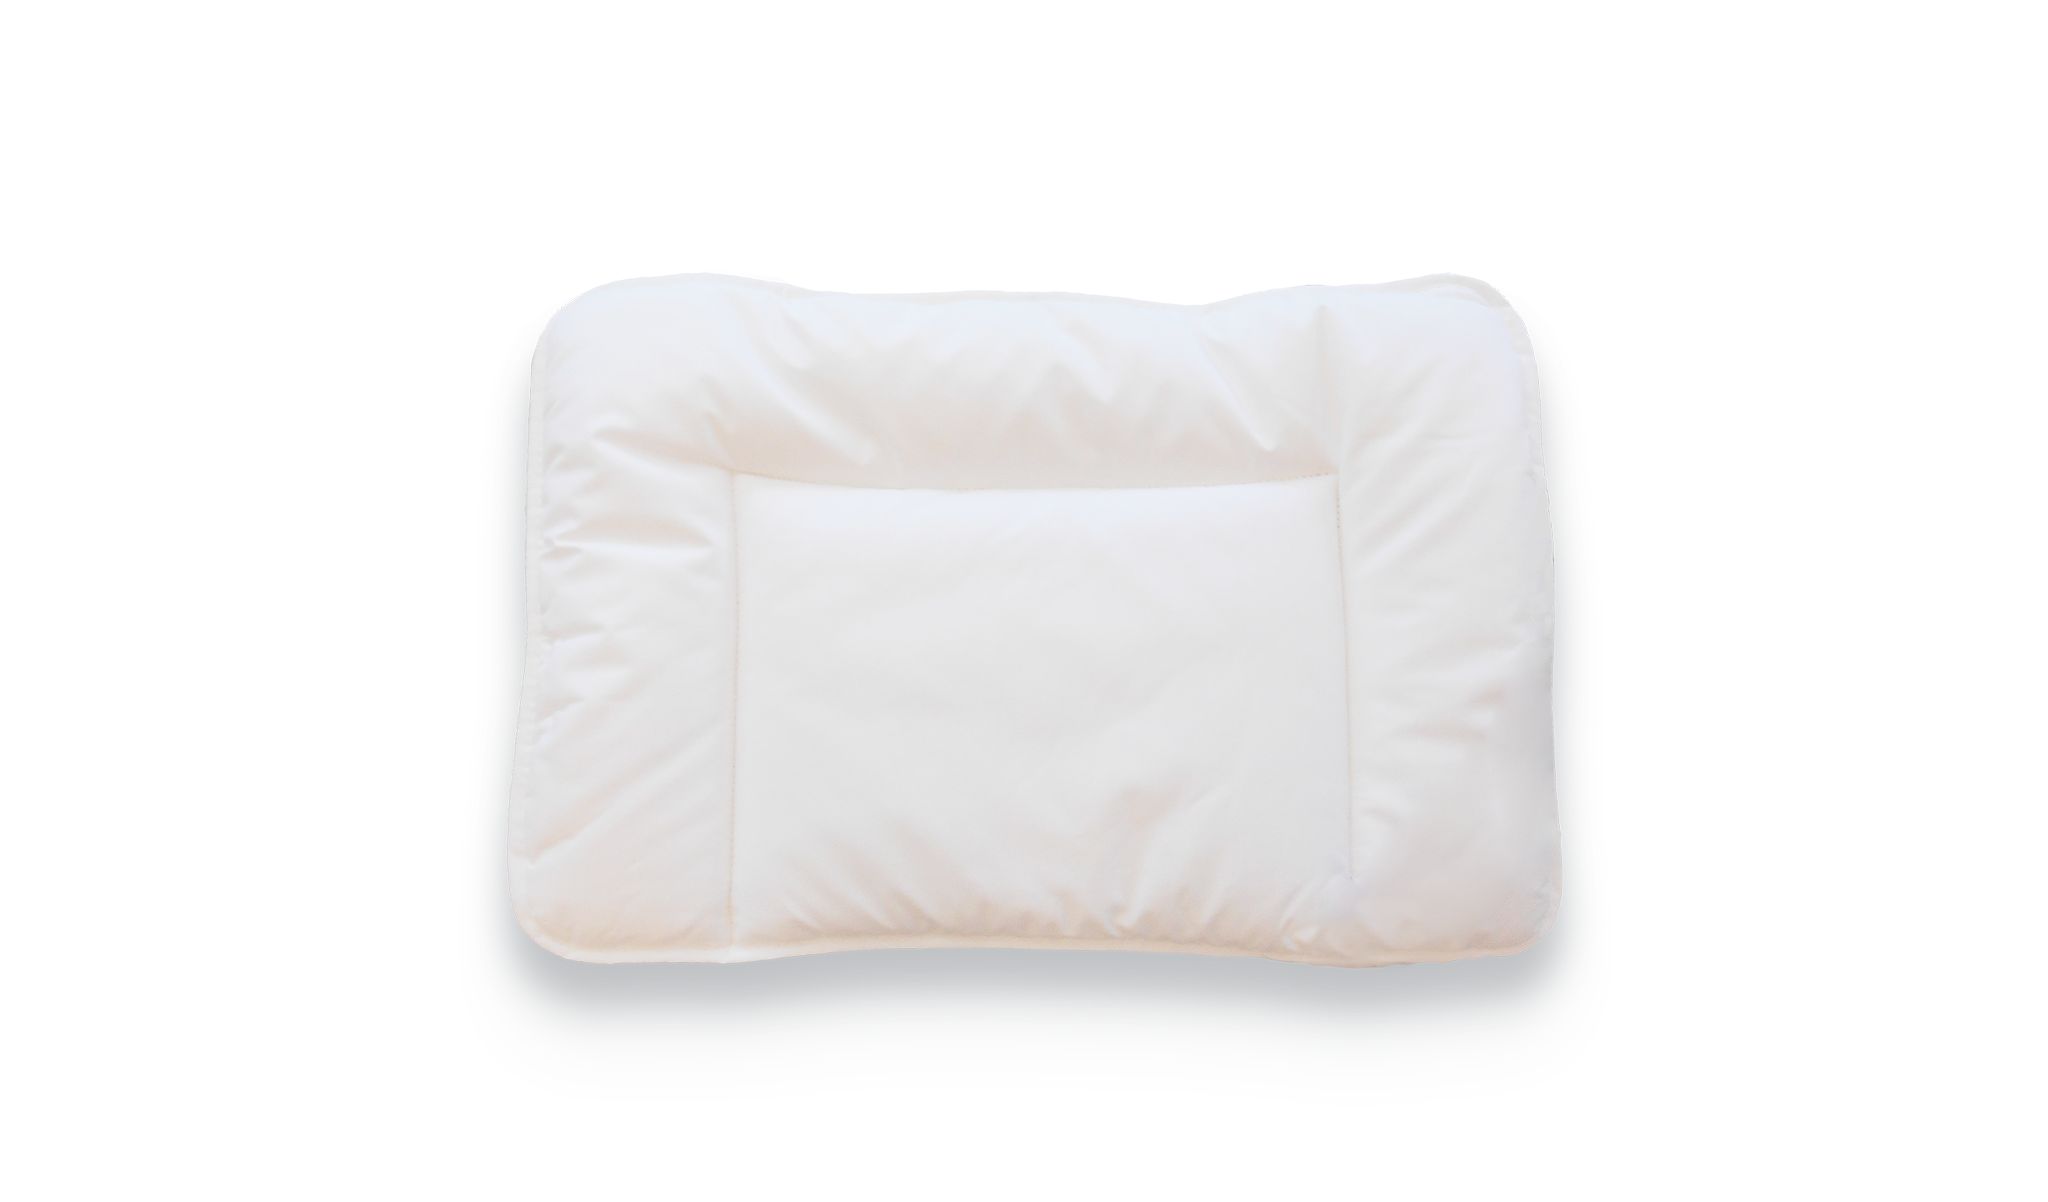 T060503 - almohada THINSULATE